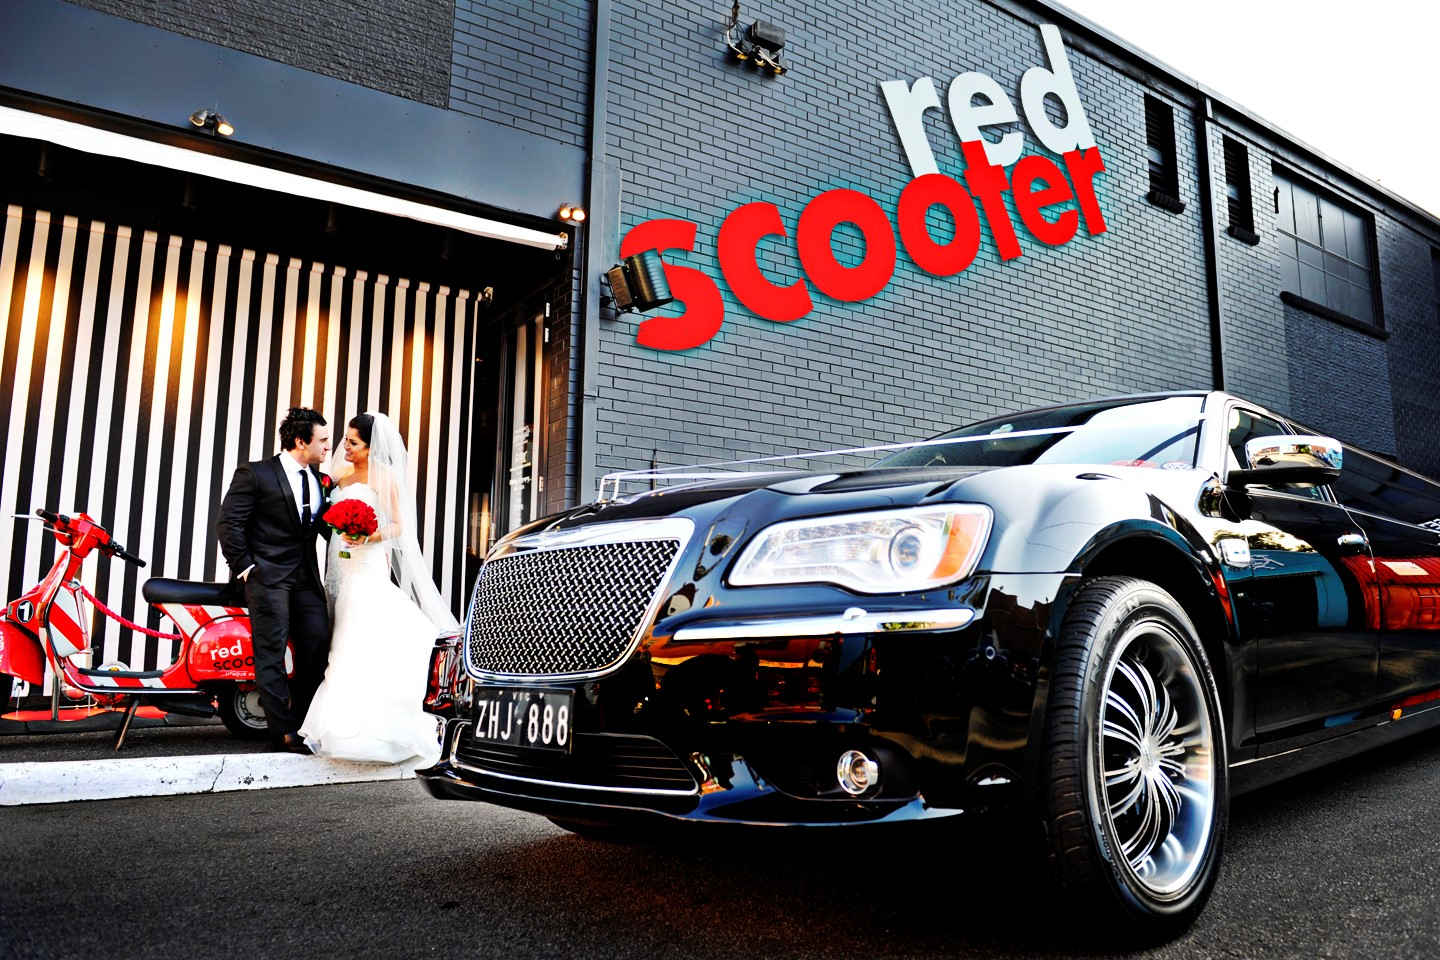 Red Scooter Winter Wedding Limo Hire Melbourne